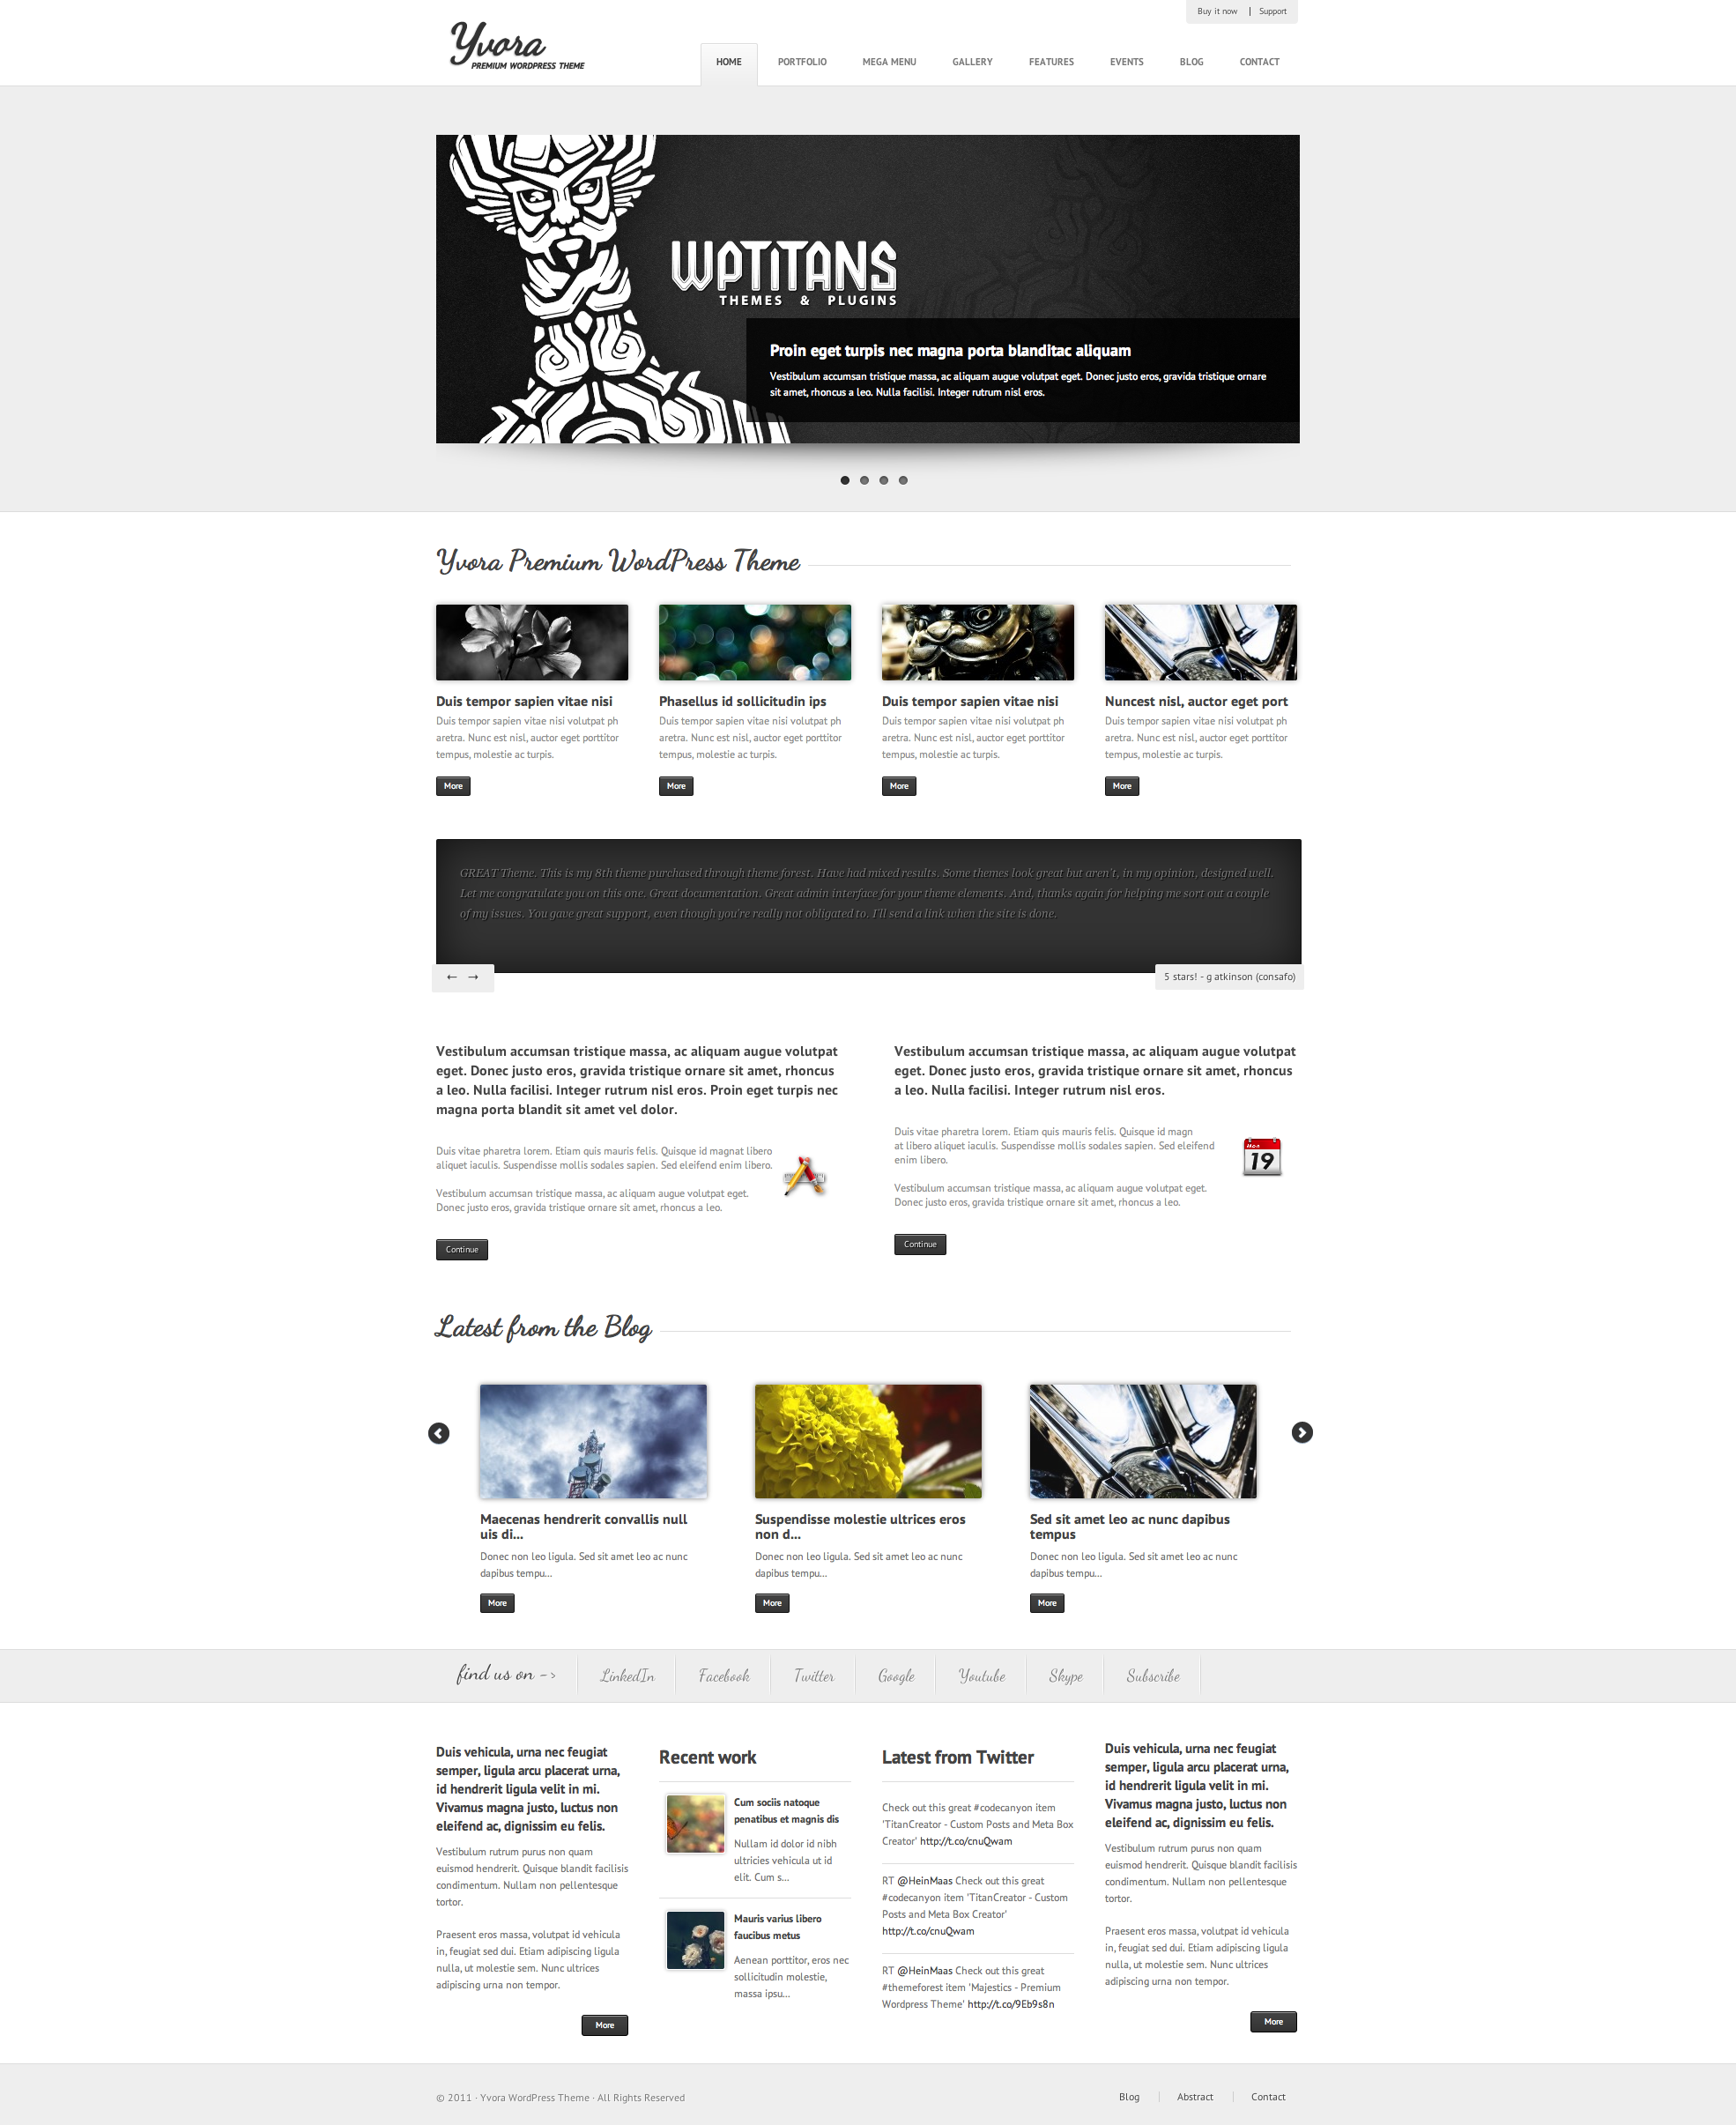 Yvora - Premium WordPress Theme